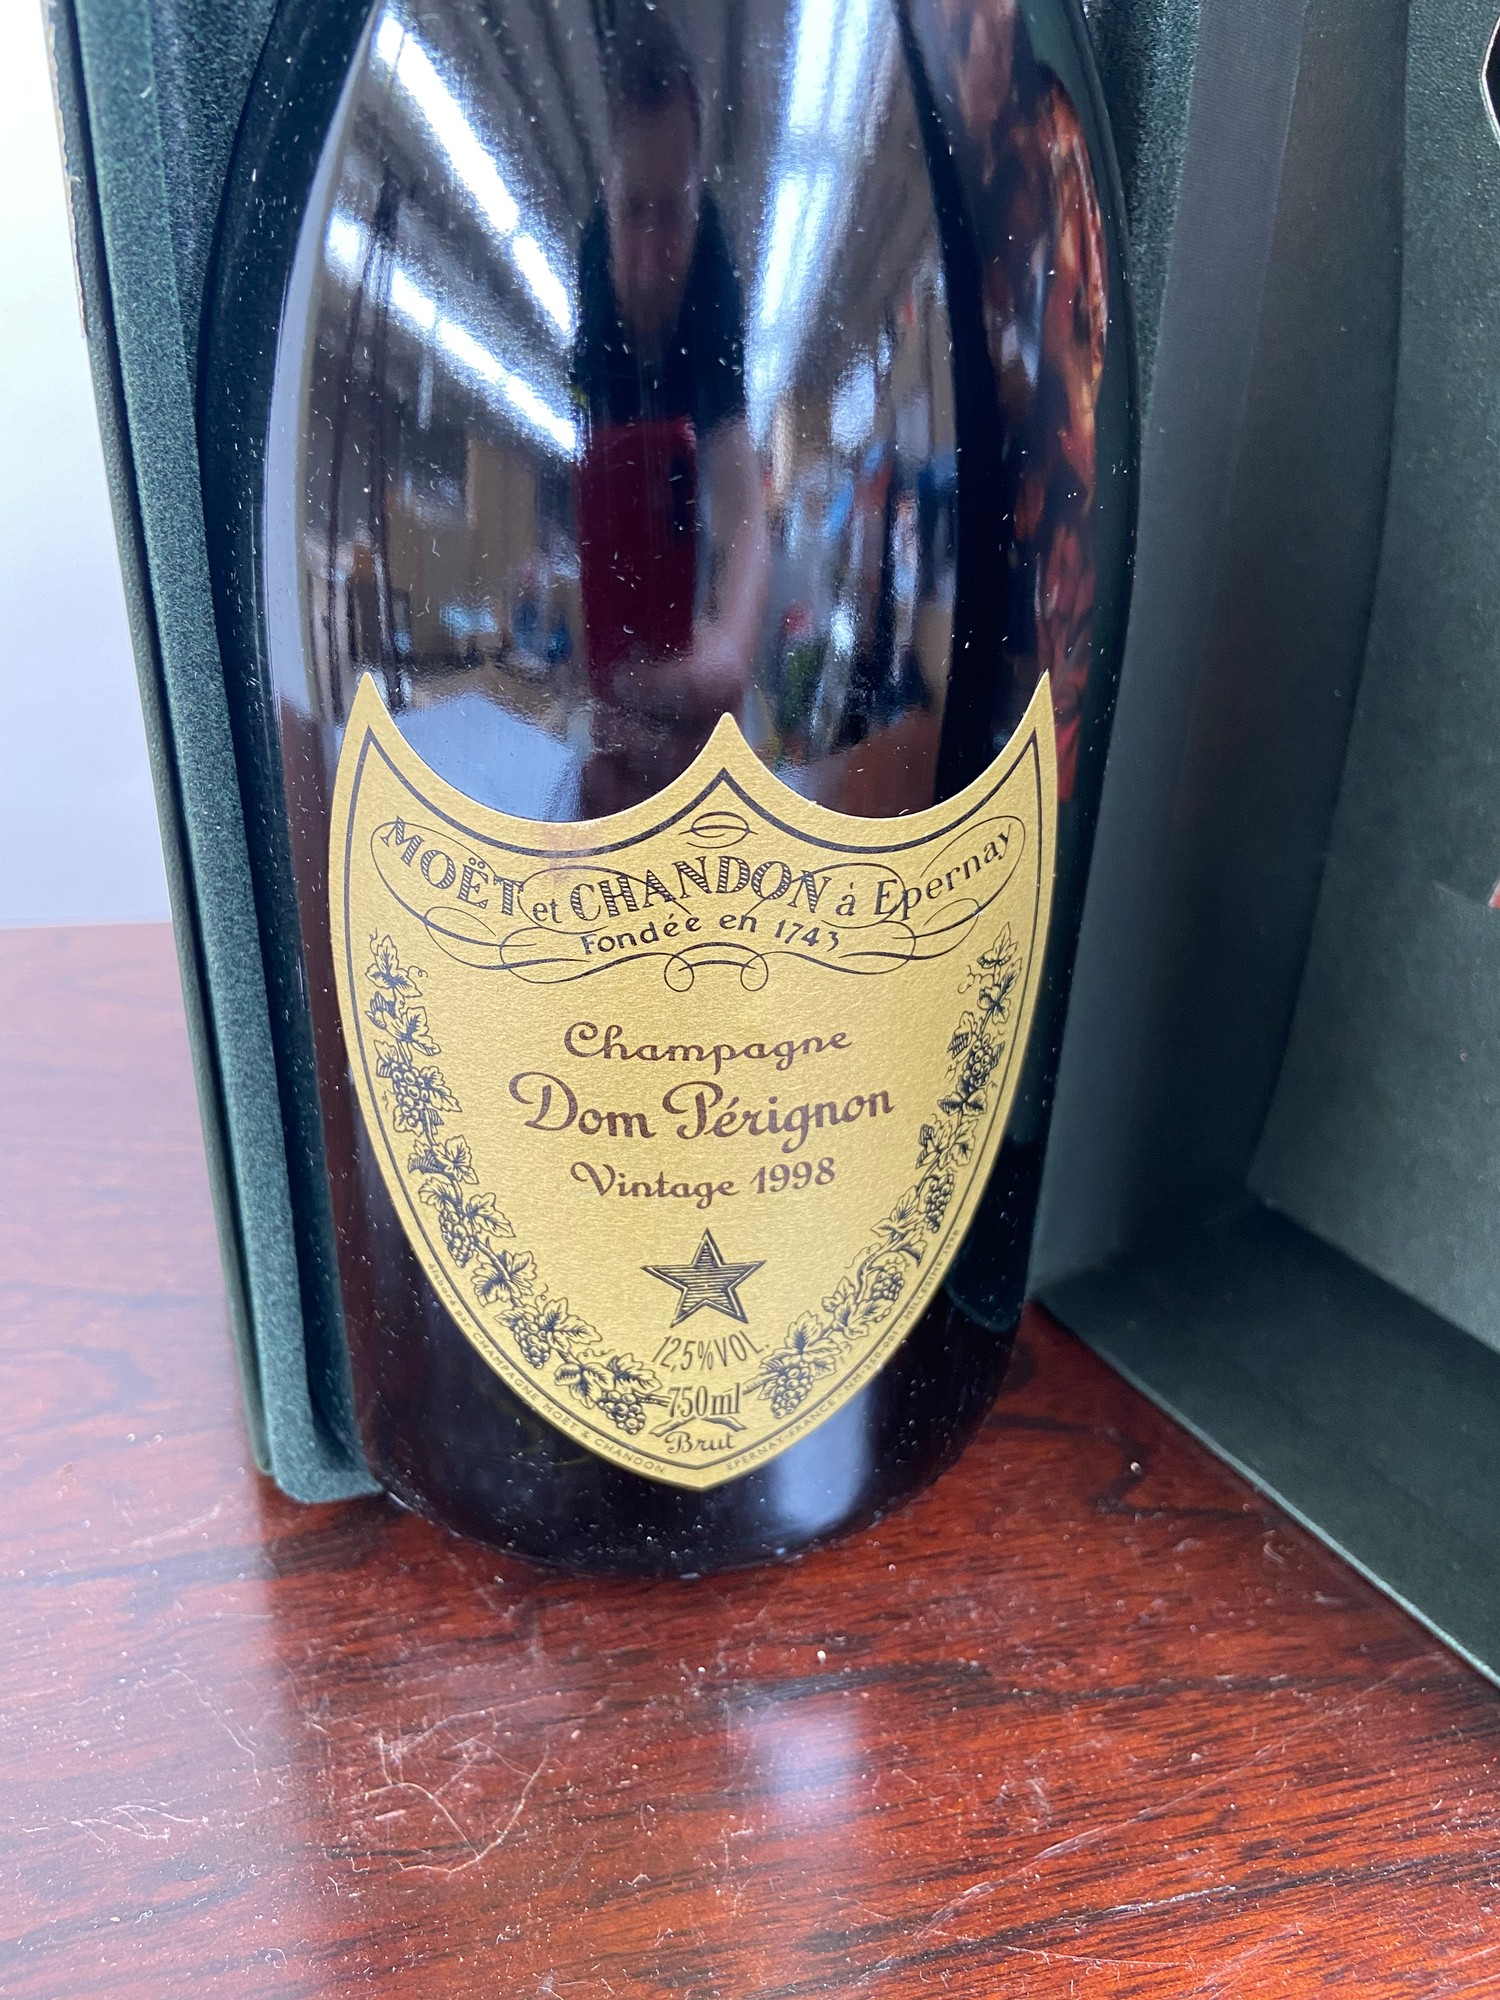 A Bottling of Champagne Dom Perignon Vintage 1998. Boxed. - Image 2 of 4